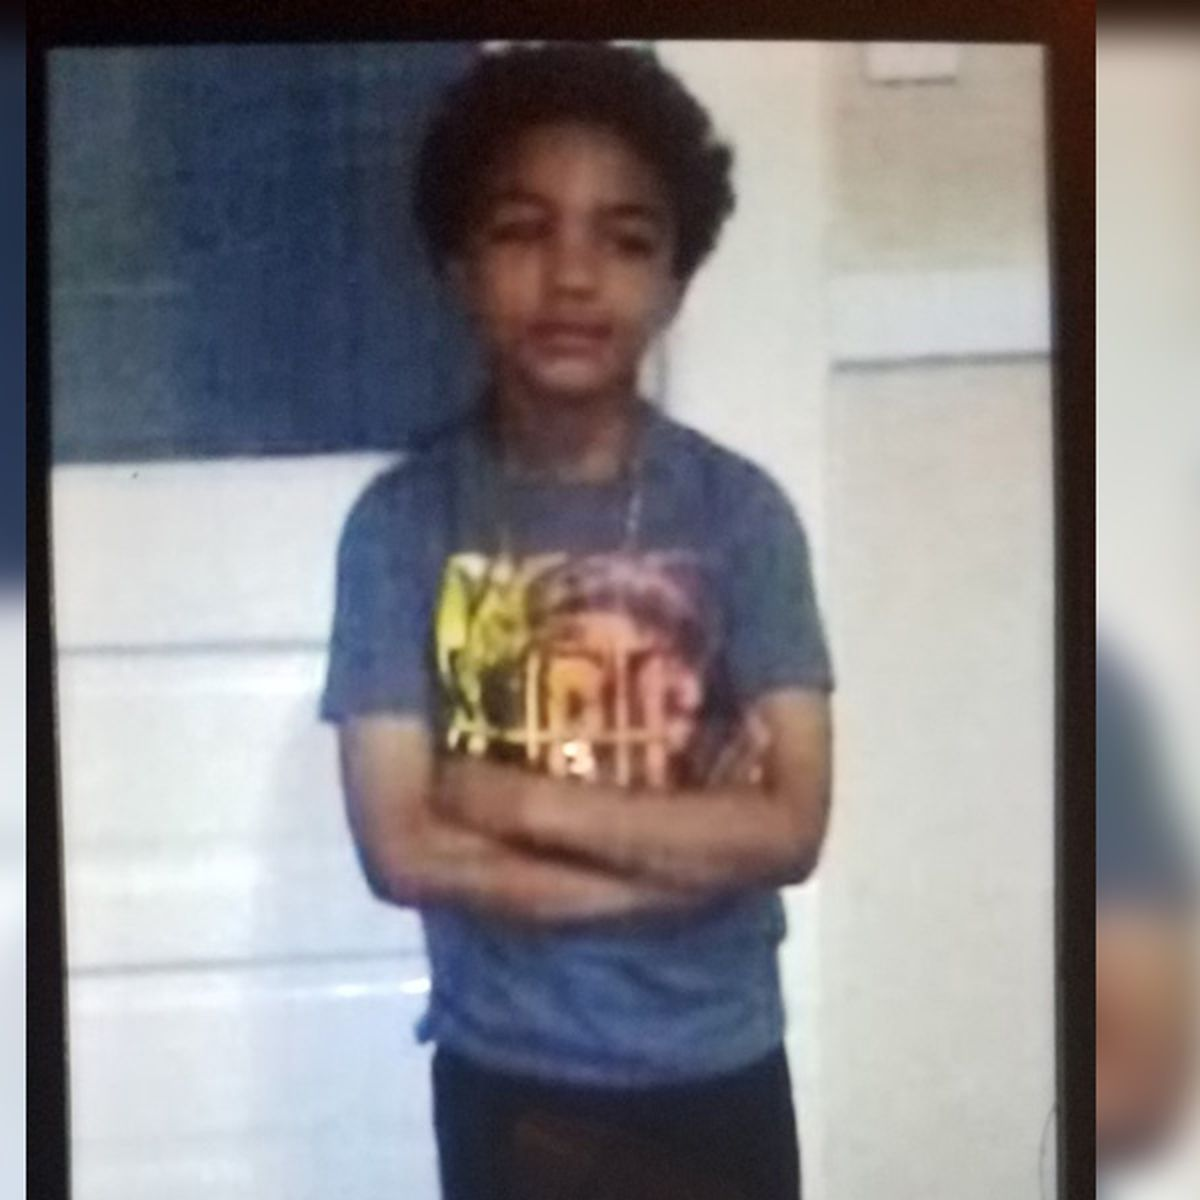 Memphis officials searching for missing, endangered 12-year-old boy